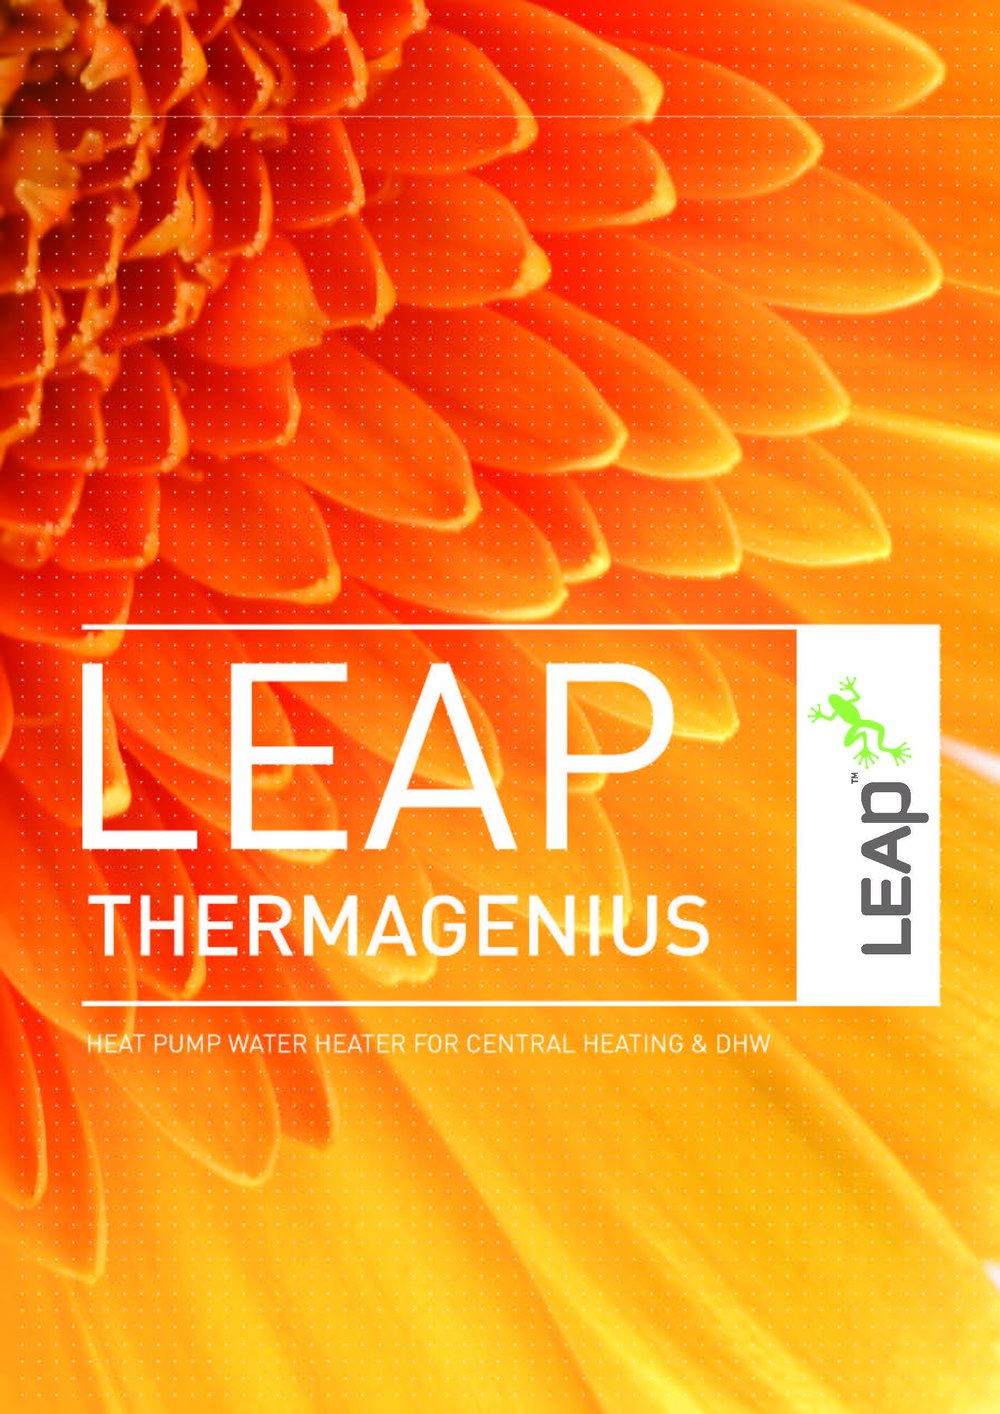 LEAP_THERMAGENIUS HPWH 25C078 Hdr.jpg